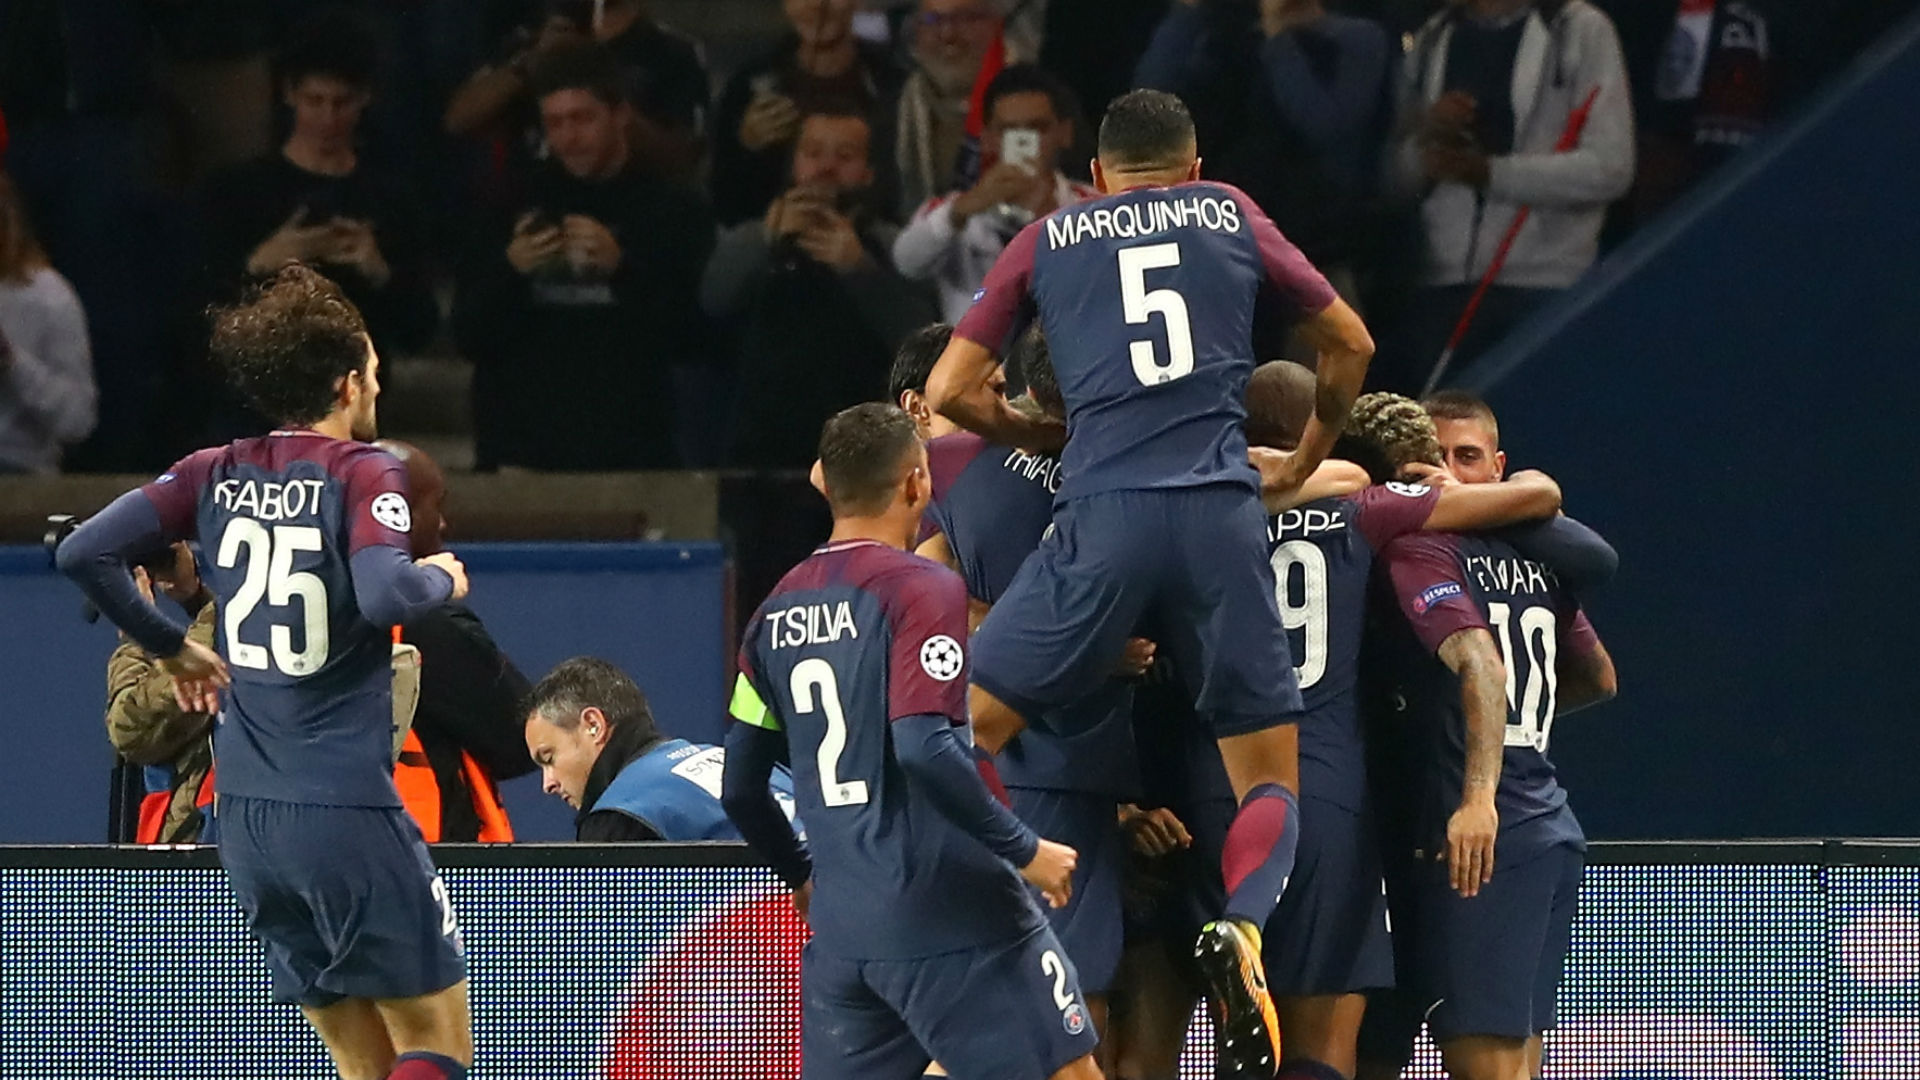 PSG's Neymar, Mbappe and Cavani combine for magical, insanely smooth goal